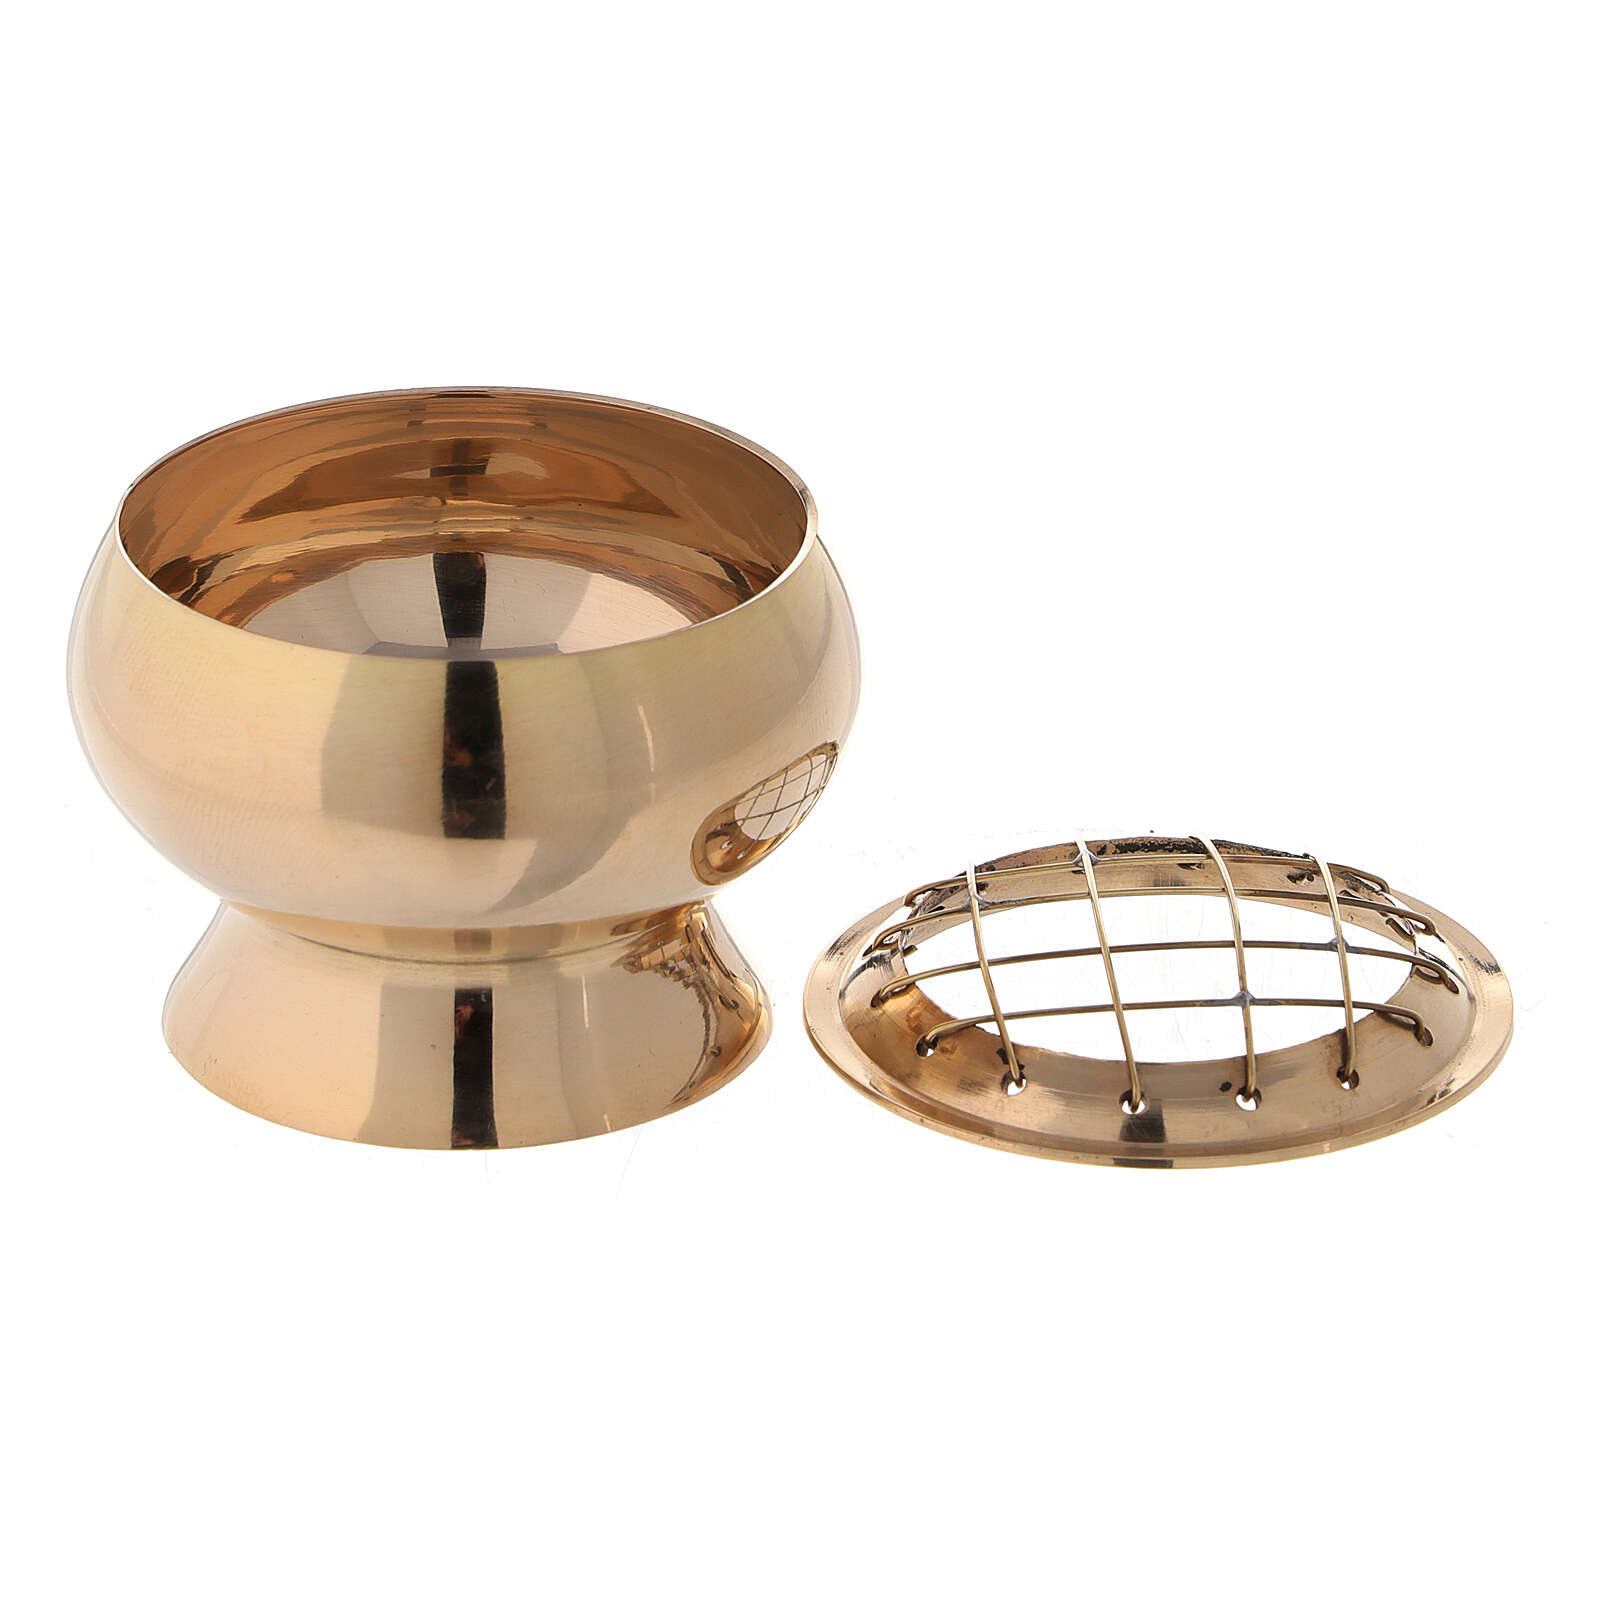 Incense burner with net in gold plated brass diameter 2 3/4 in 3